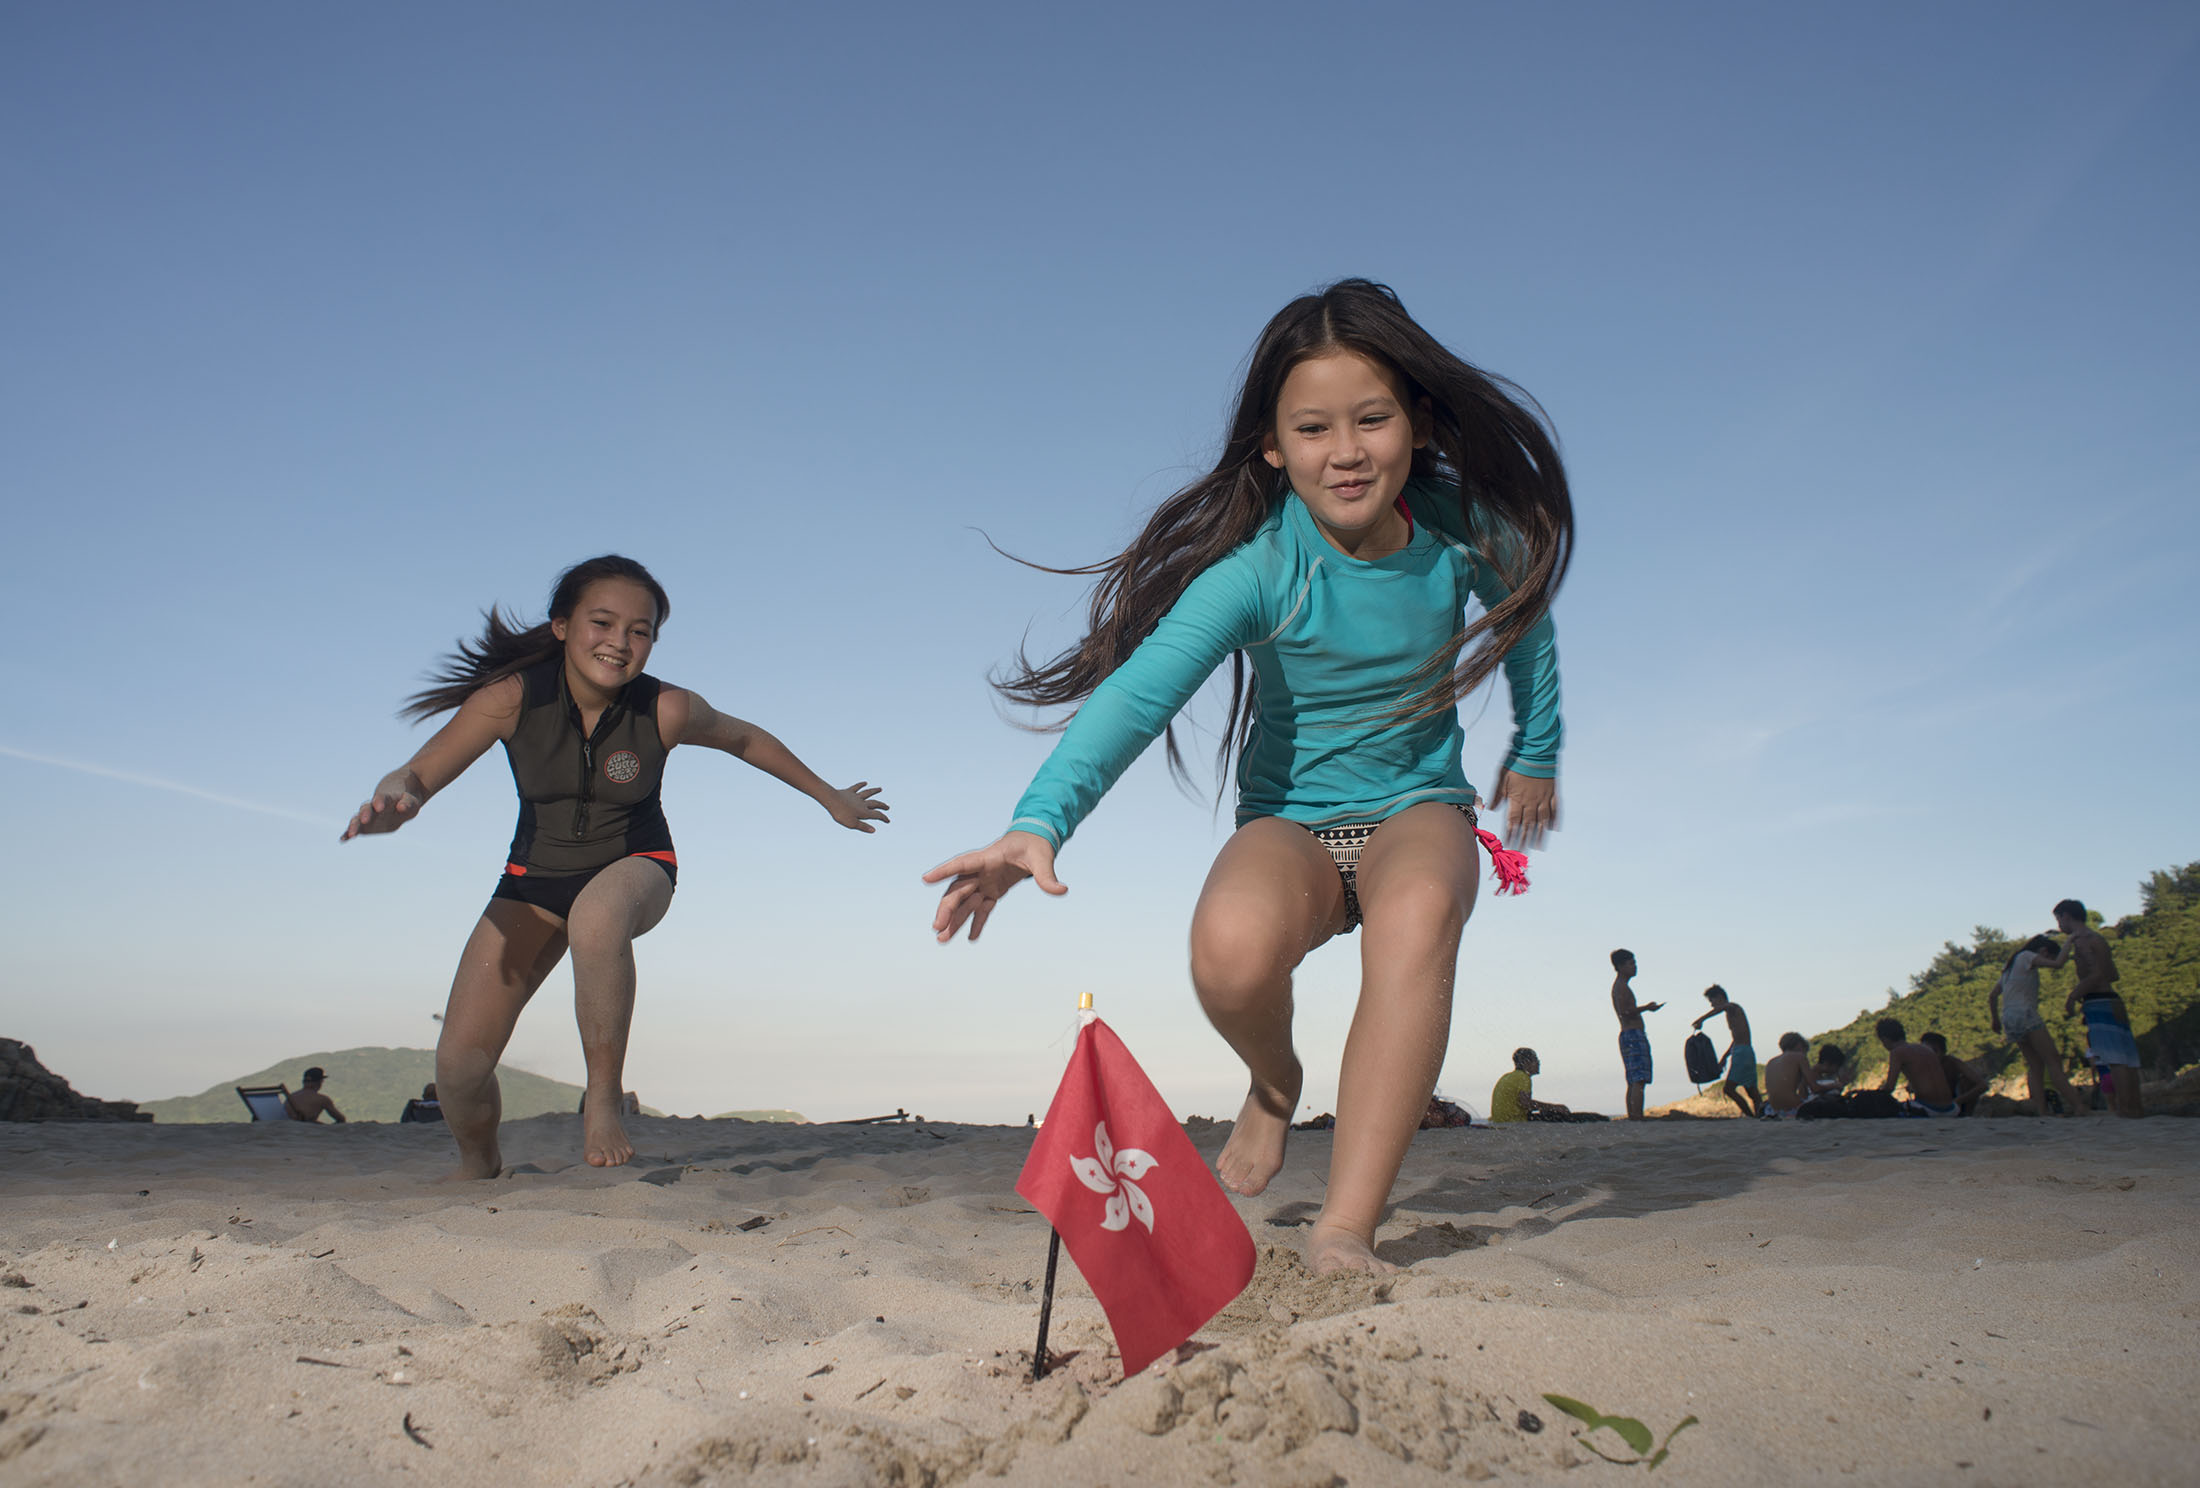 Two girls play beach games chase the flag